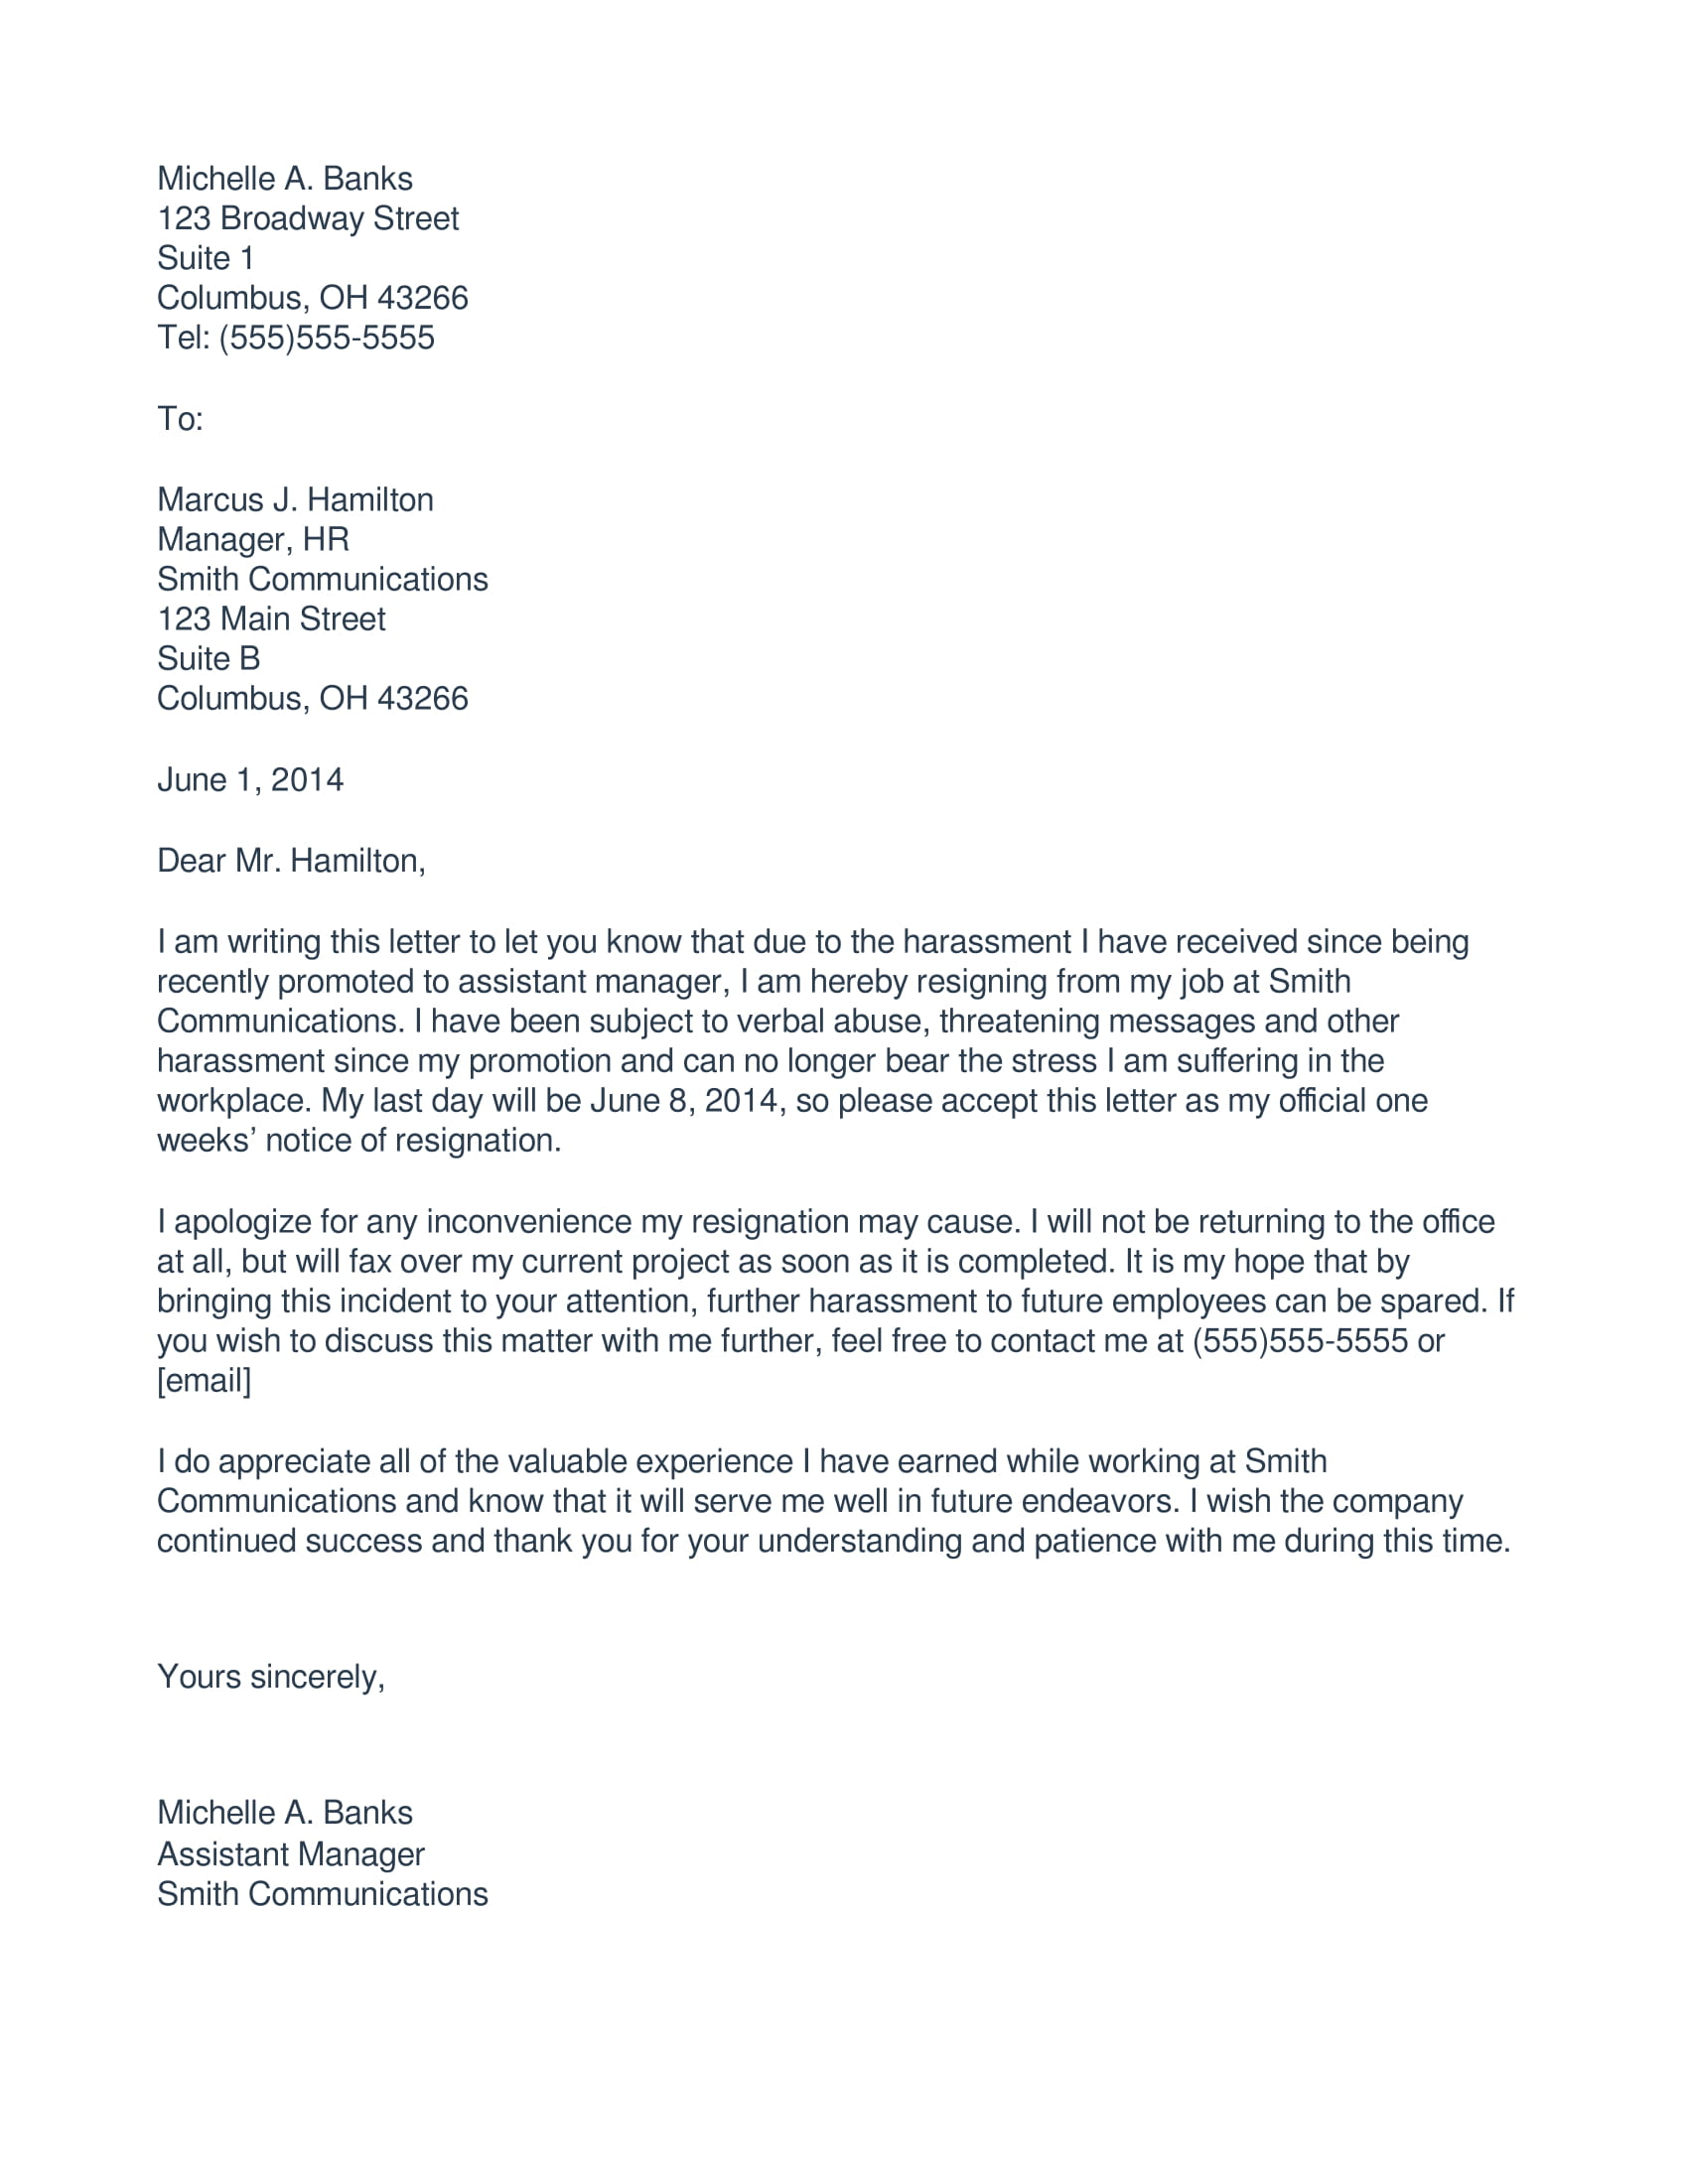 immediate resigantion letter due to harassment 1